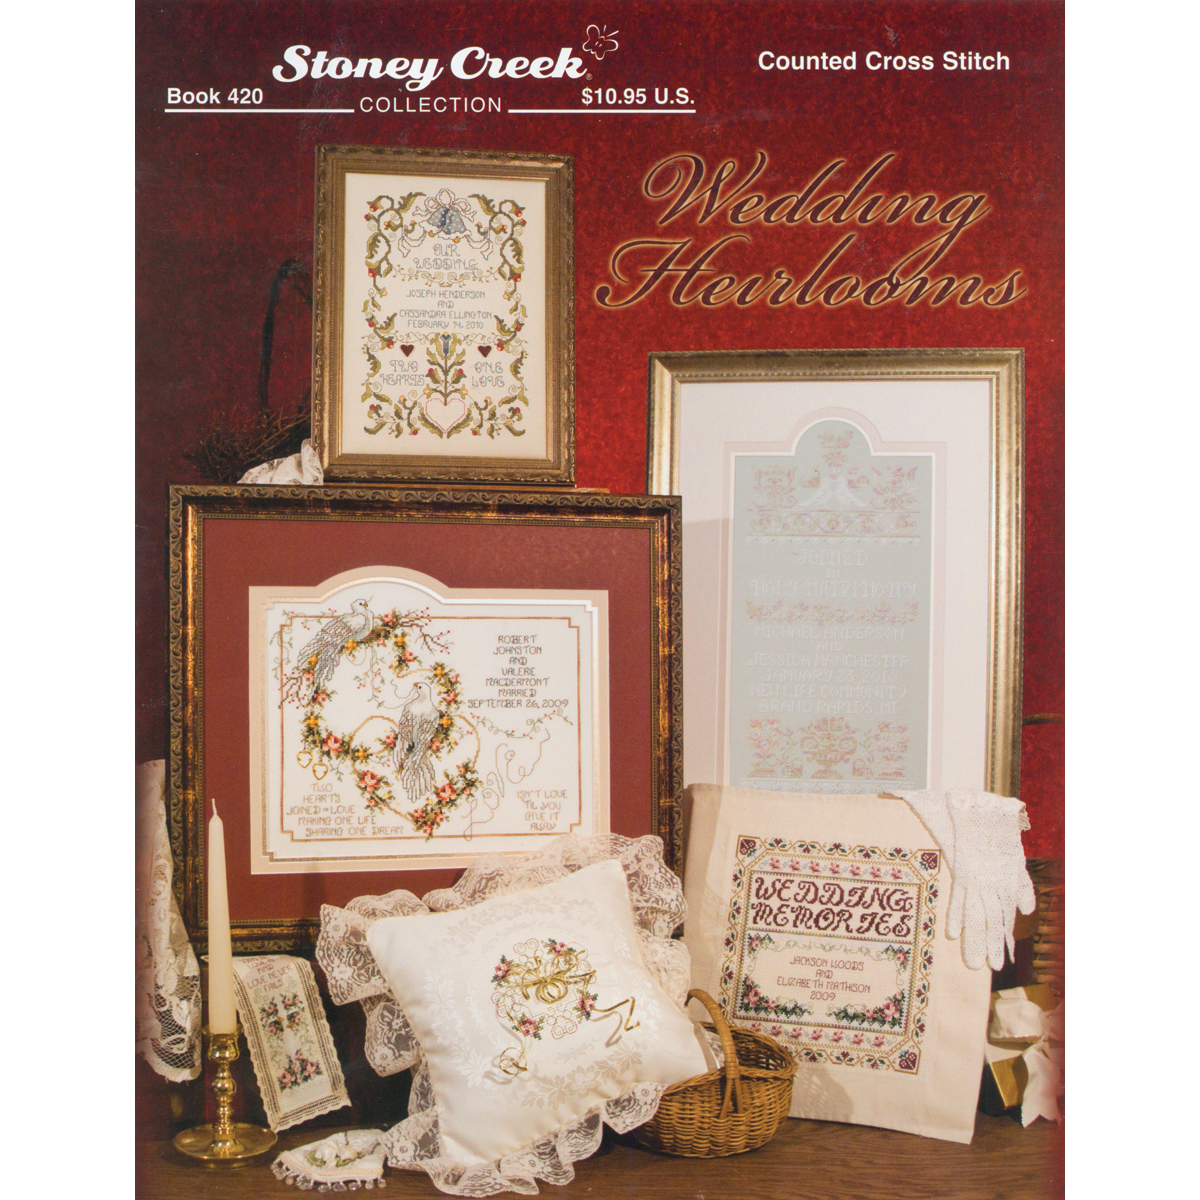 Stoney Creek Wedding Heirlooms